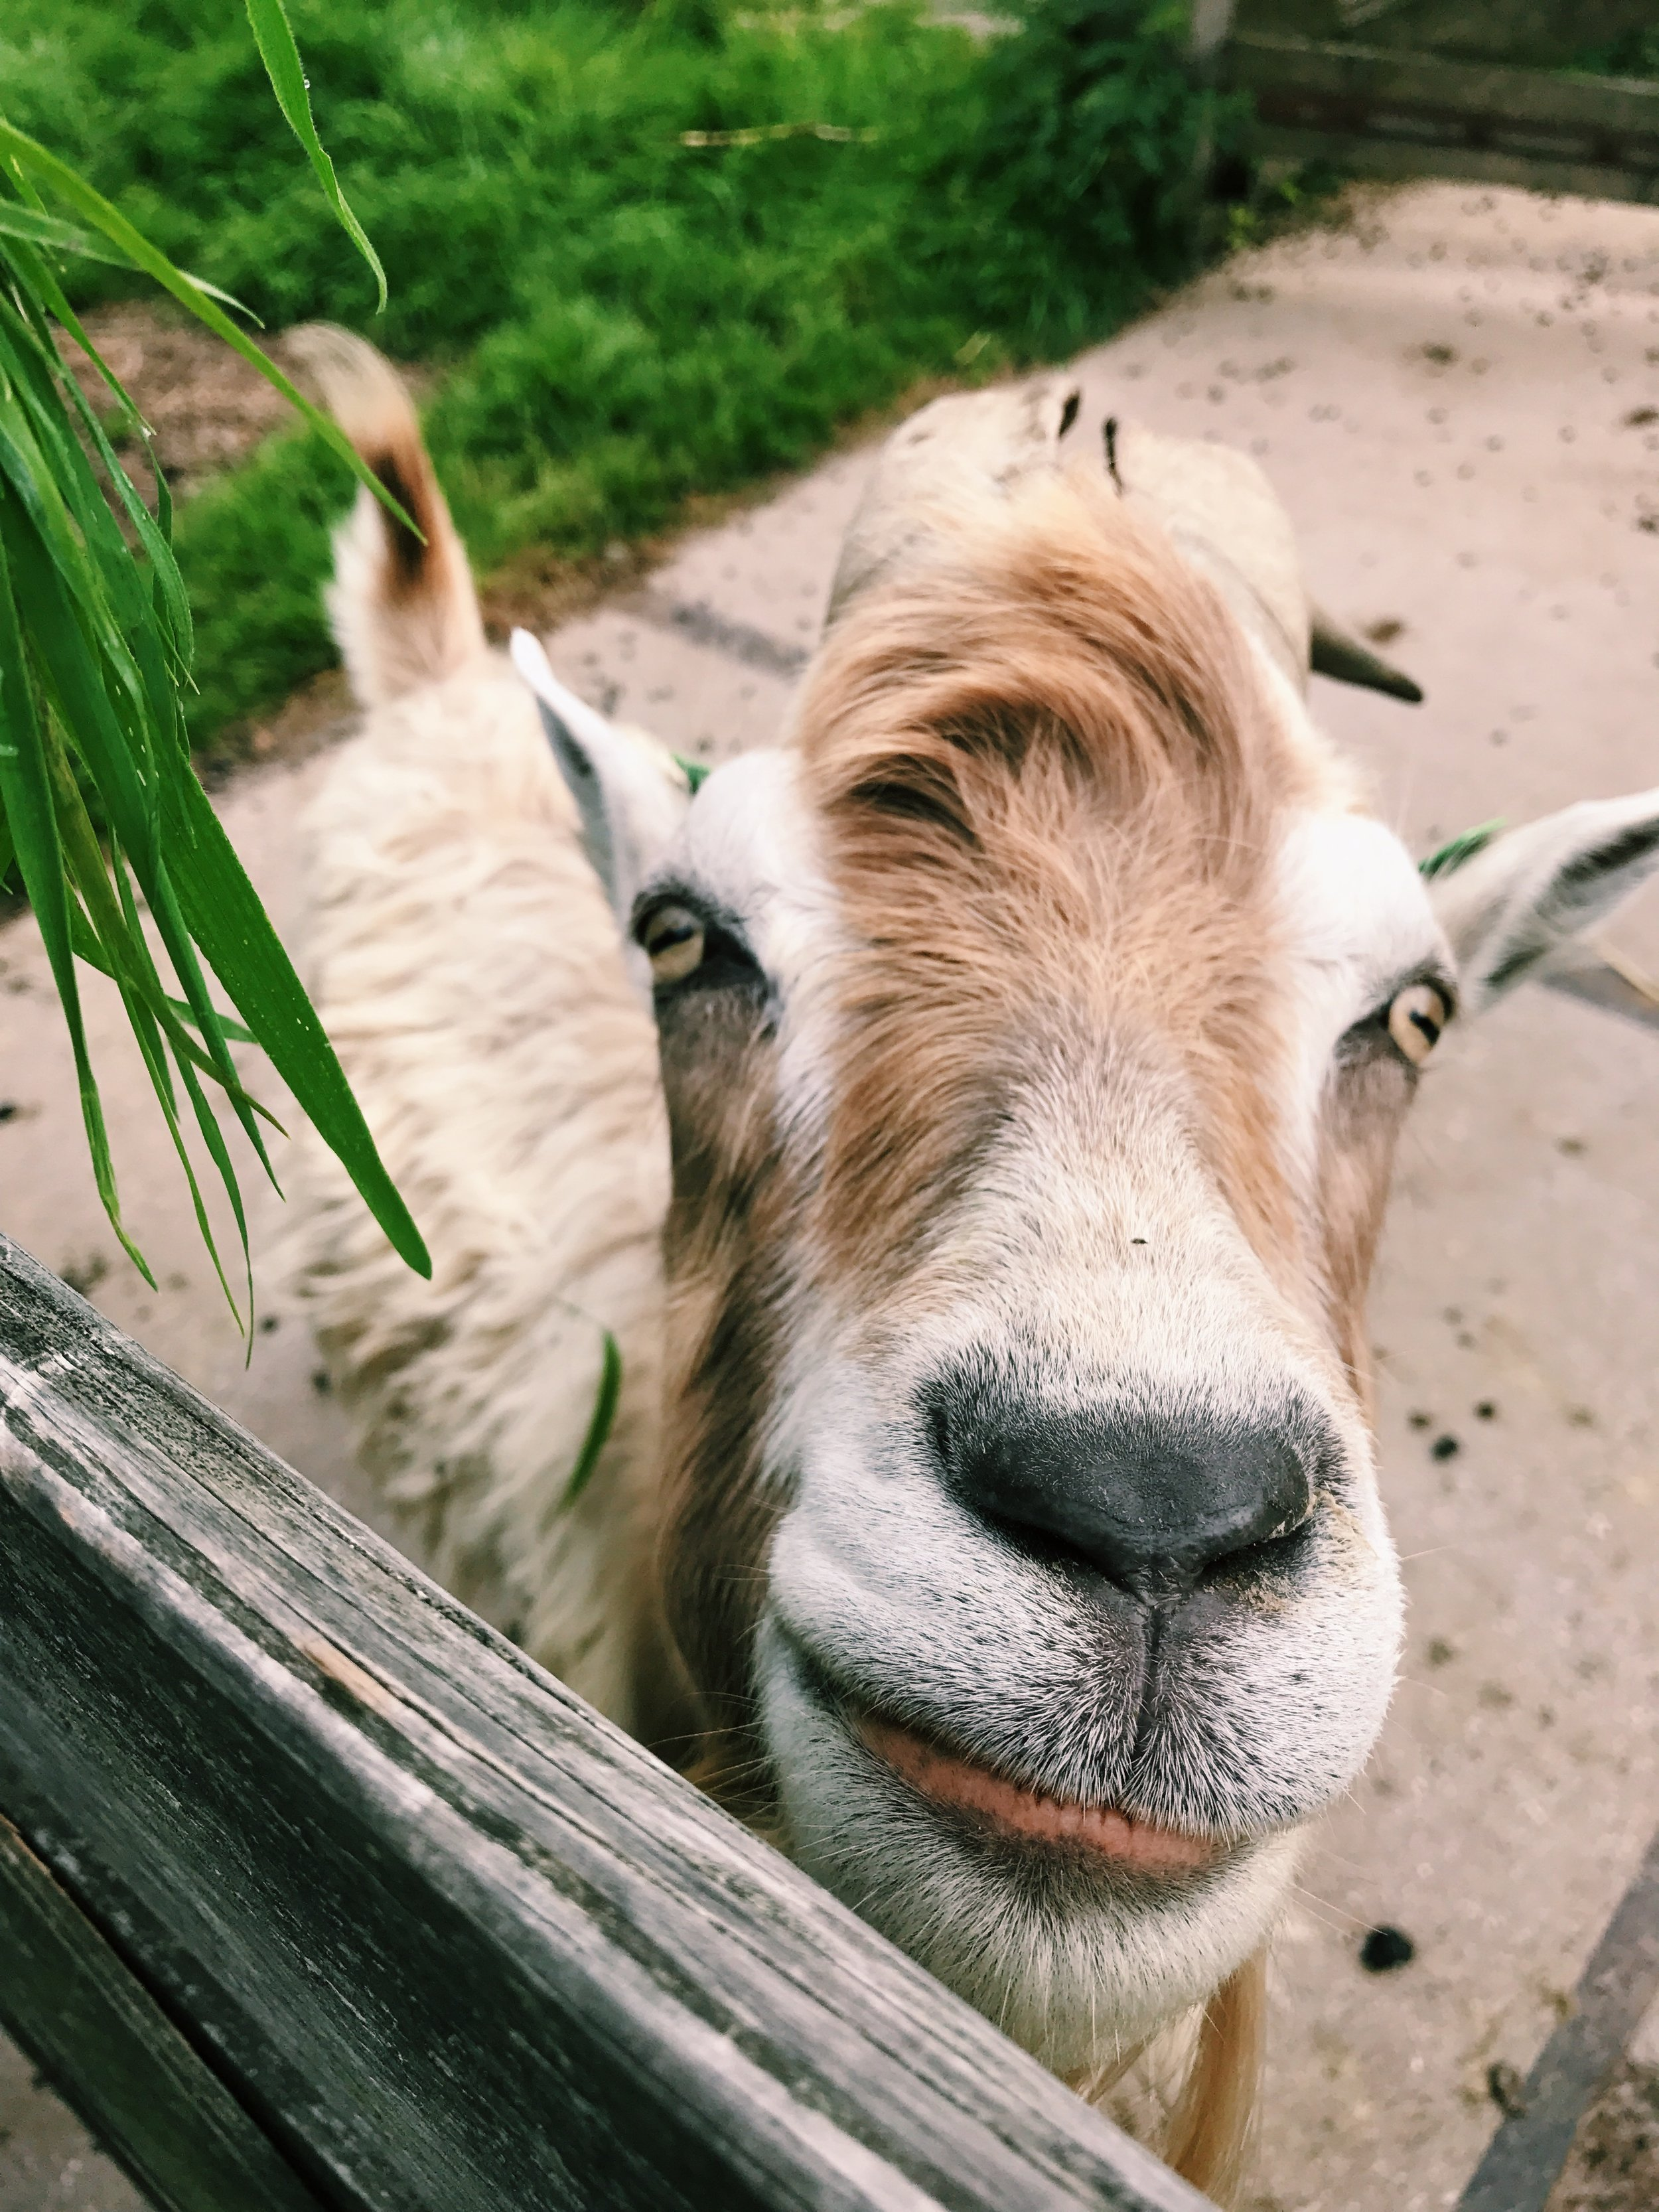 Best goat ever.